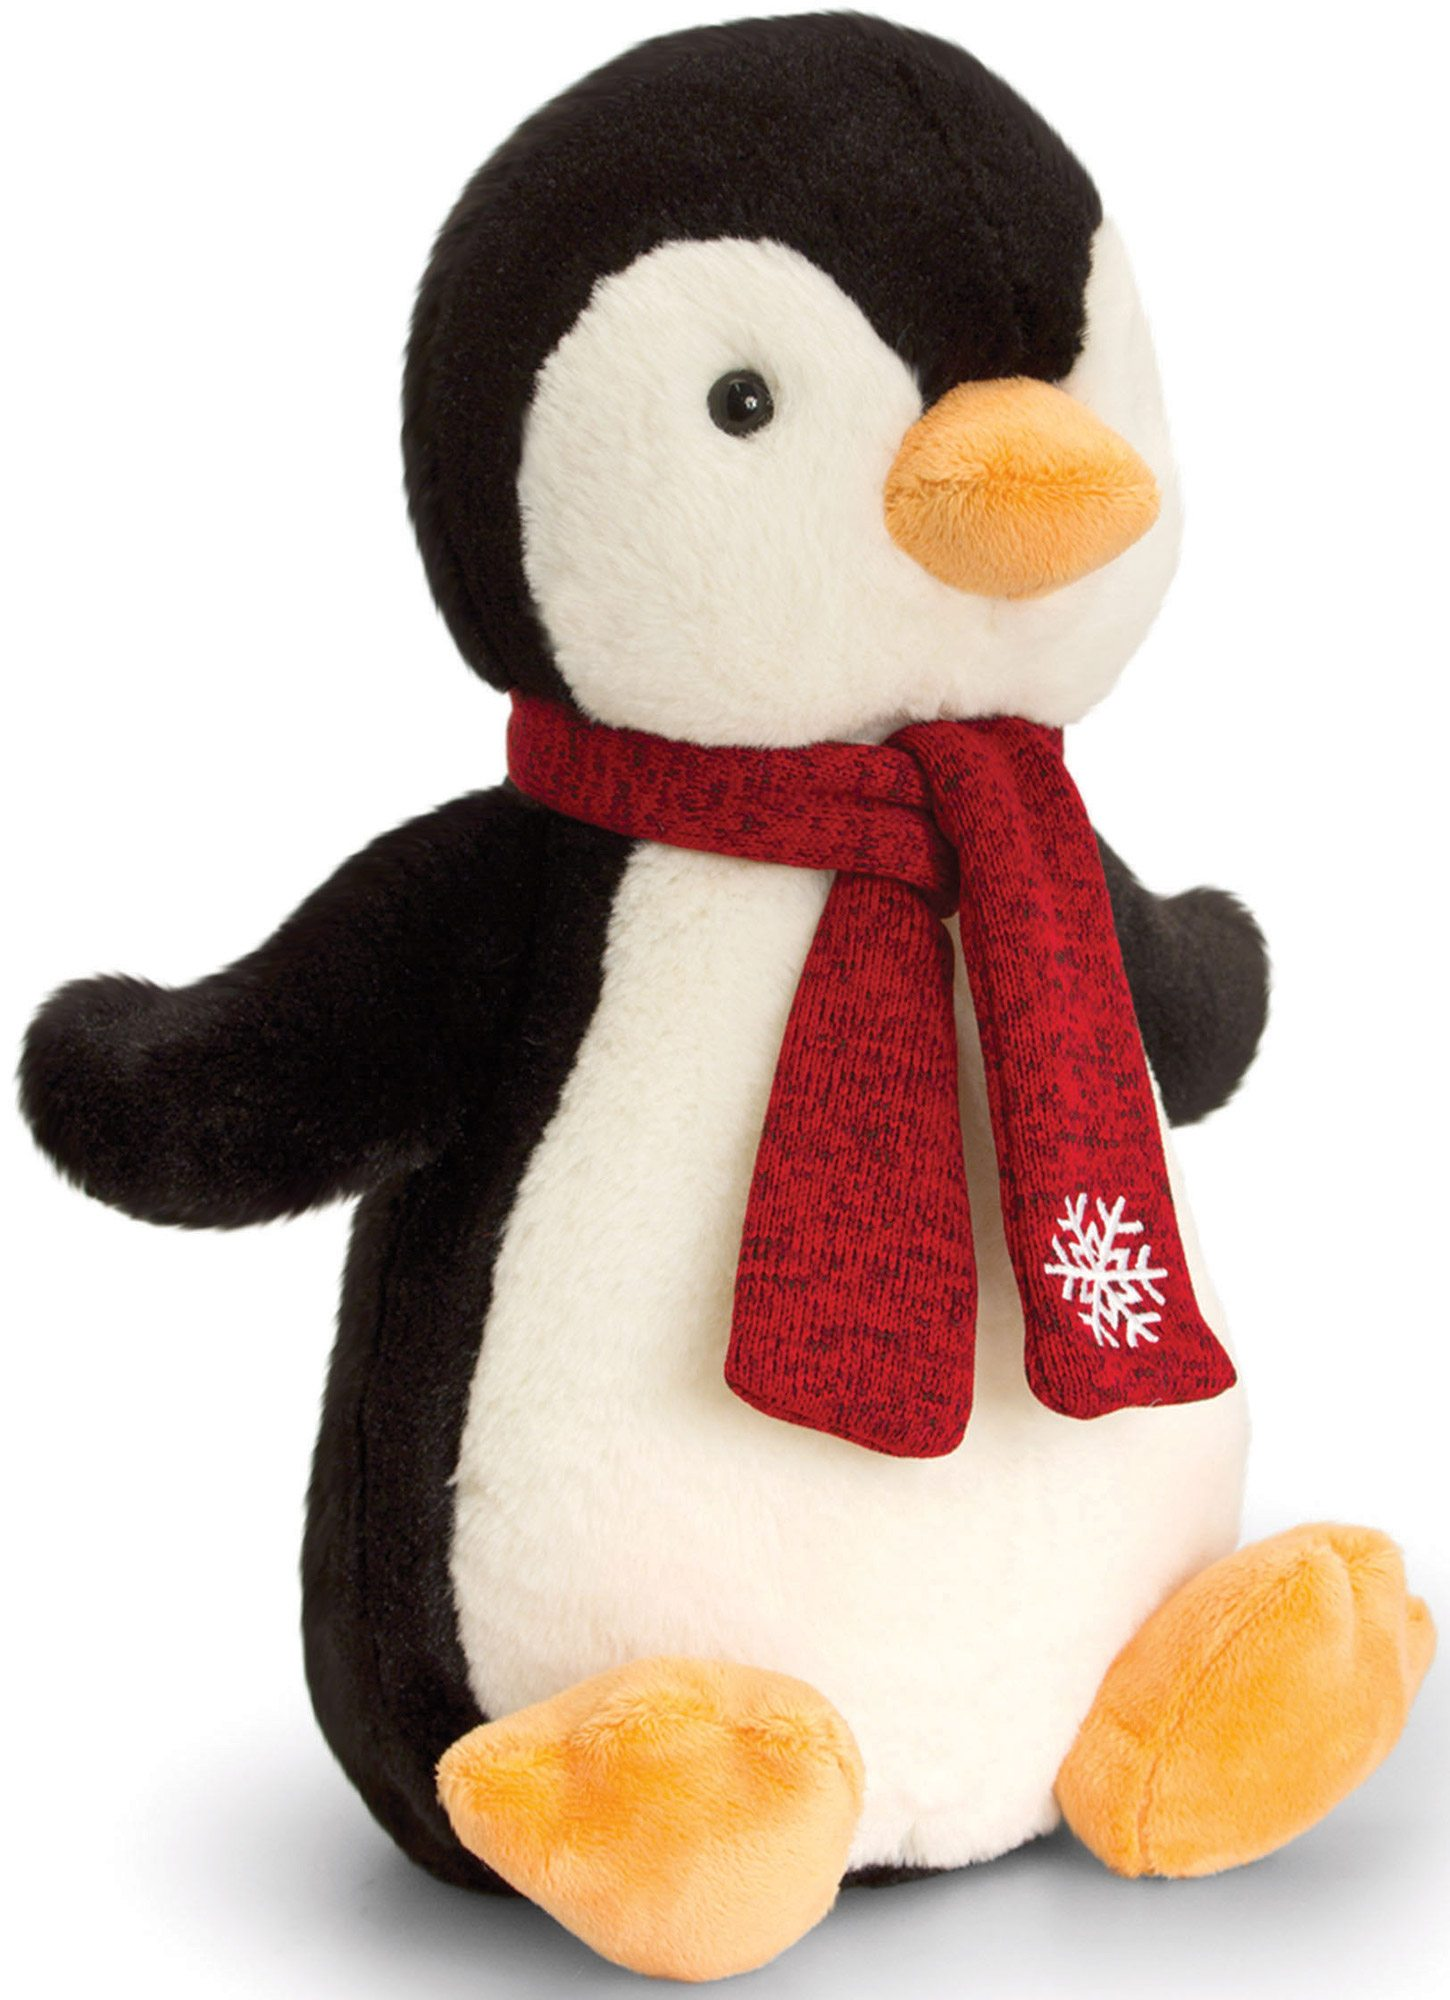 With Toys Penguin Tots : Keel toys penguin with scarf cm soft toy plush animal